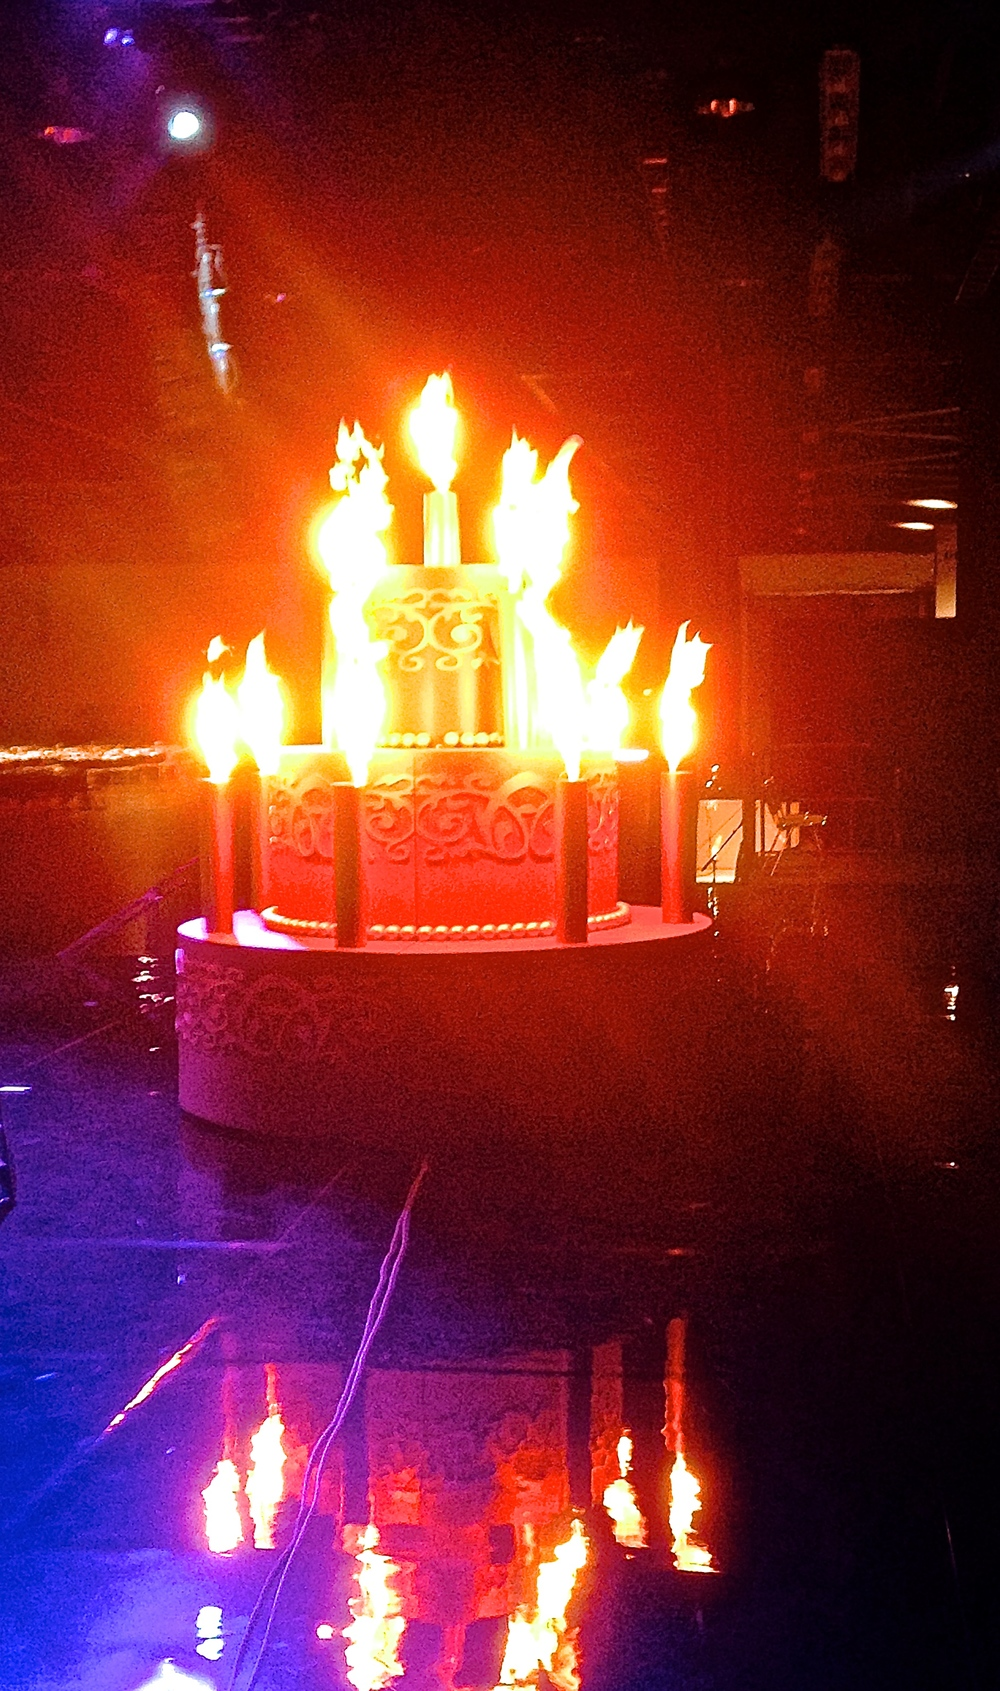 An 8-foot-tall FirePixel birthday cake built for a corporate event in Anaheim, CA.